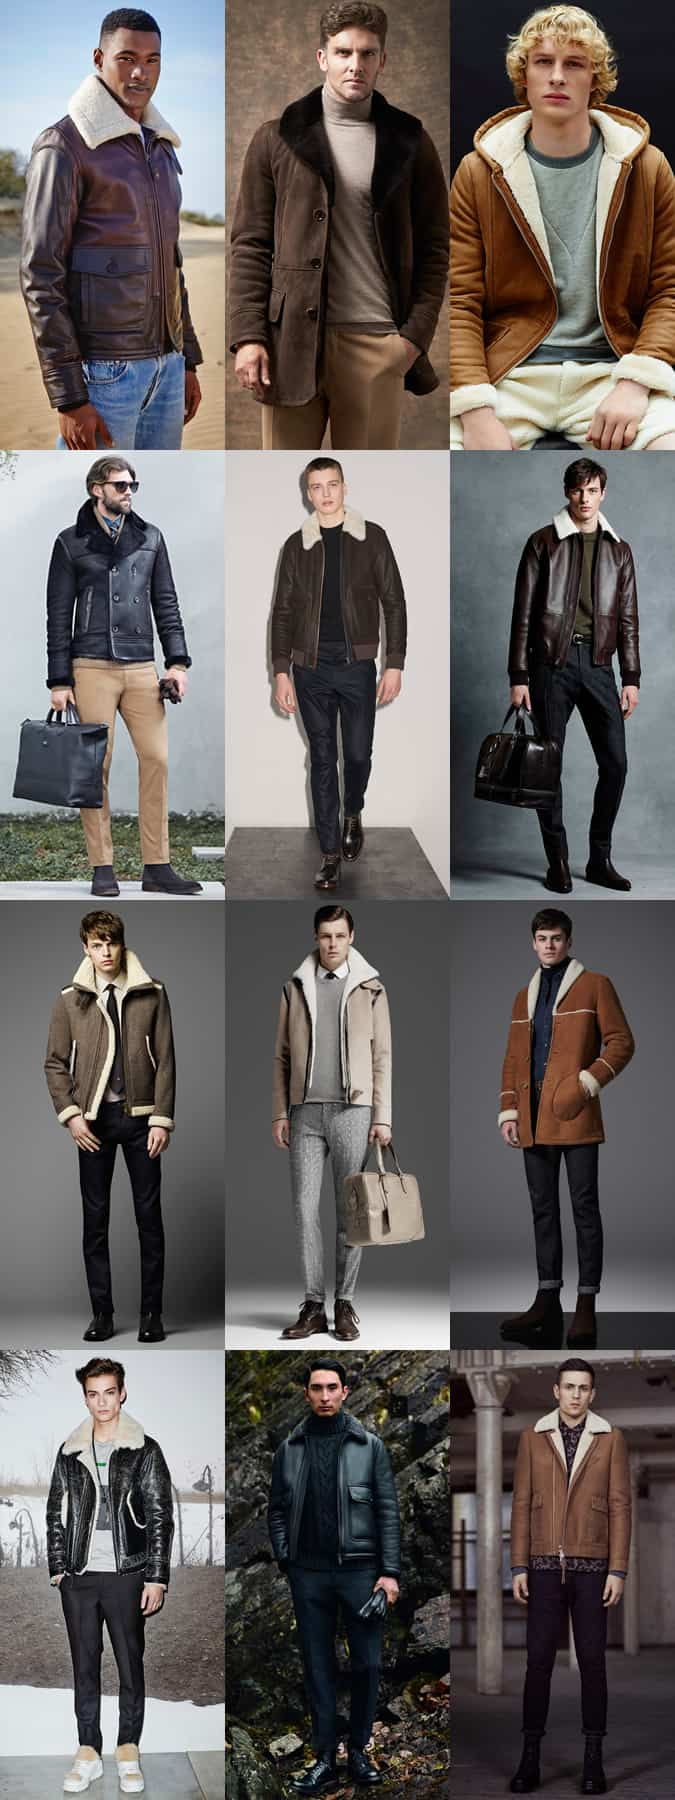 Men's Shearling Outerwear/Jackets Outfit Inspiration Lookbook